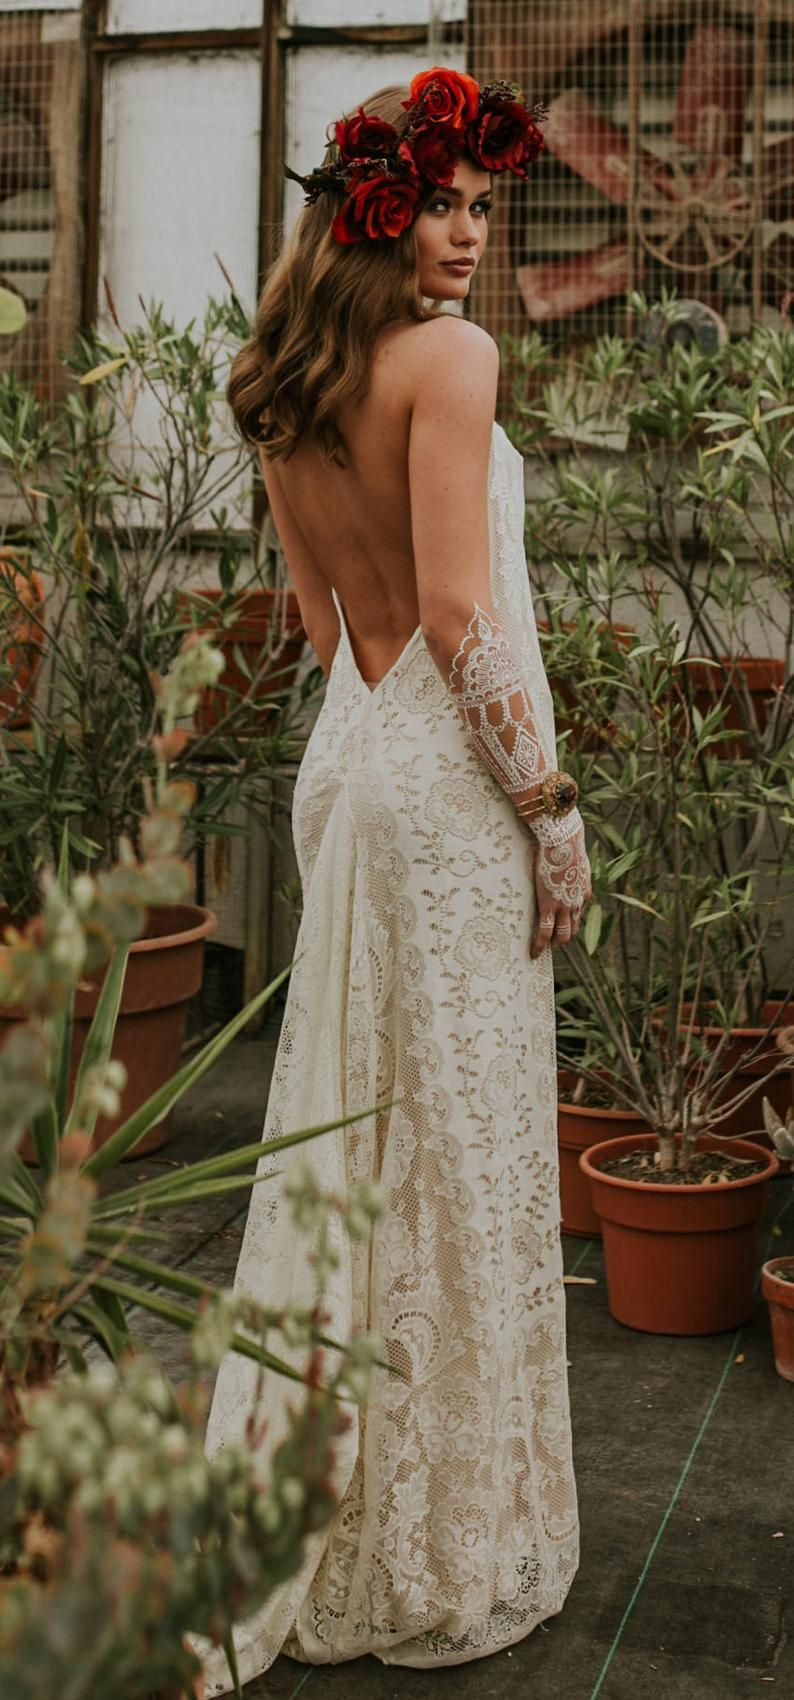 Wedding Dress Boho Wedding Dress Lace wedding dress Casual